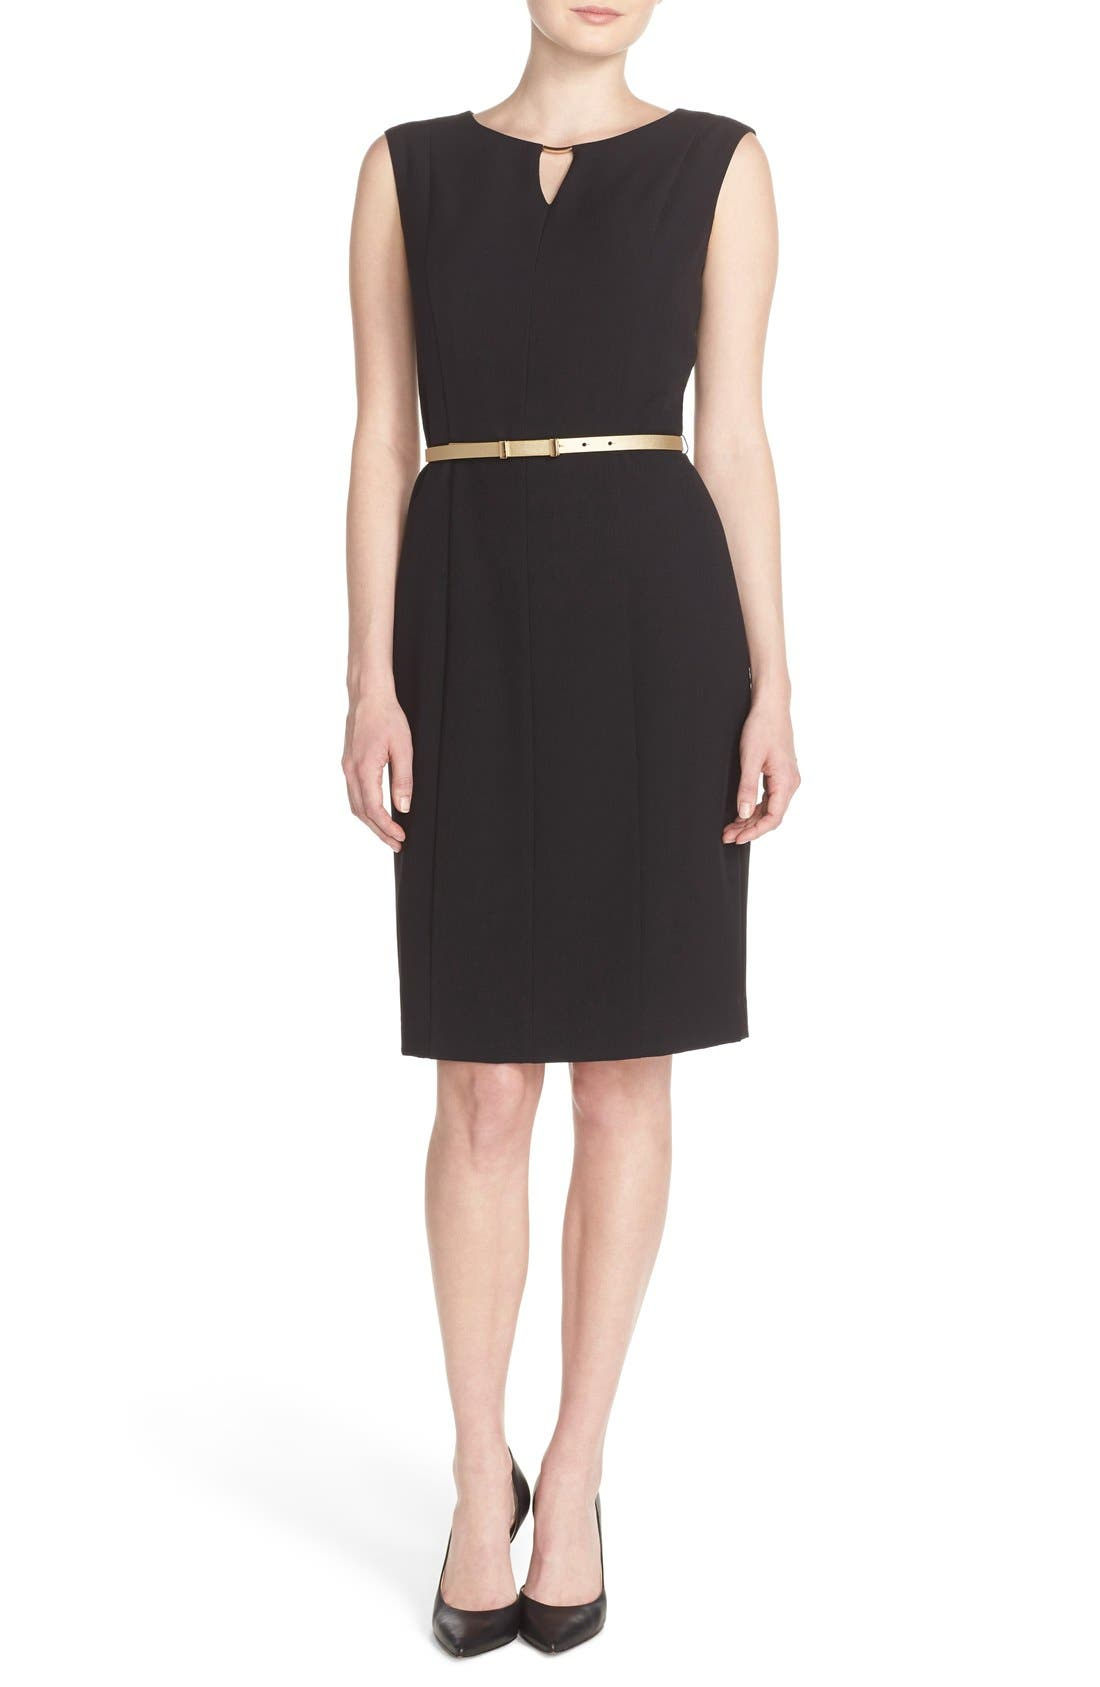 ELLEN TRACY Belted Sheath Dress